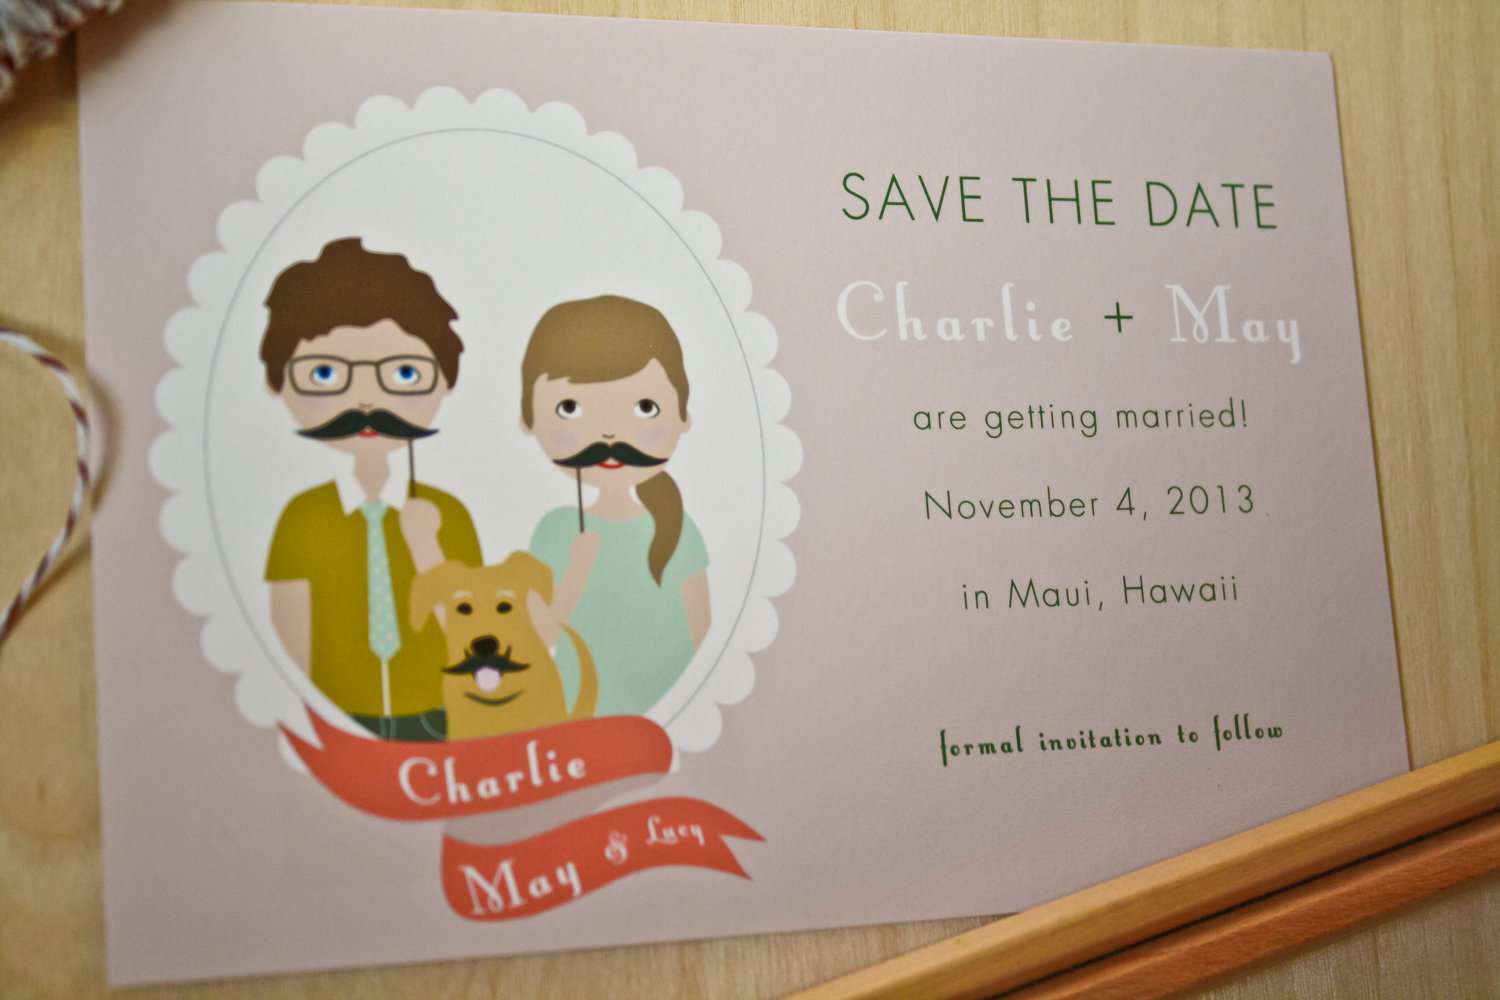 Fun-wedding-details-for-the-reception-mustache-theme-wedding-finds-cute-save-the-date.original